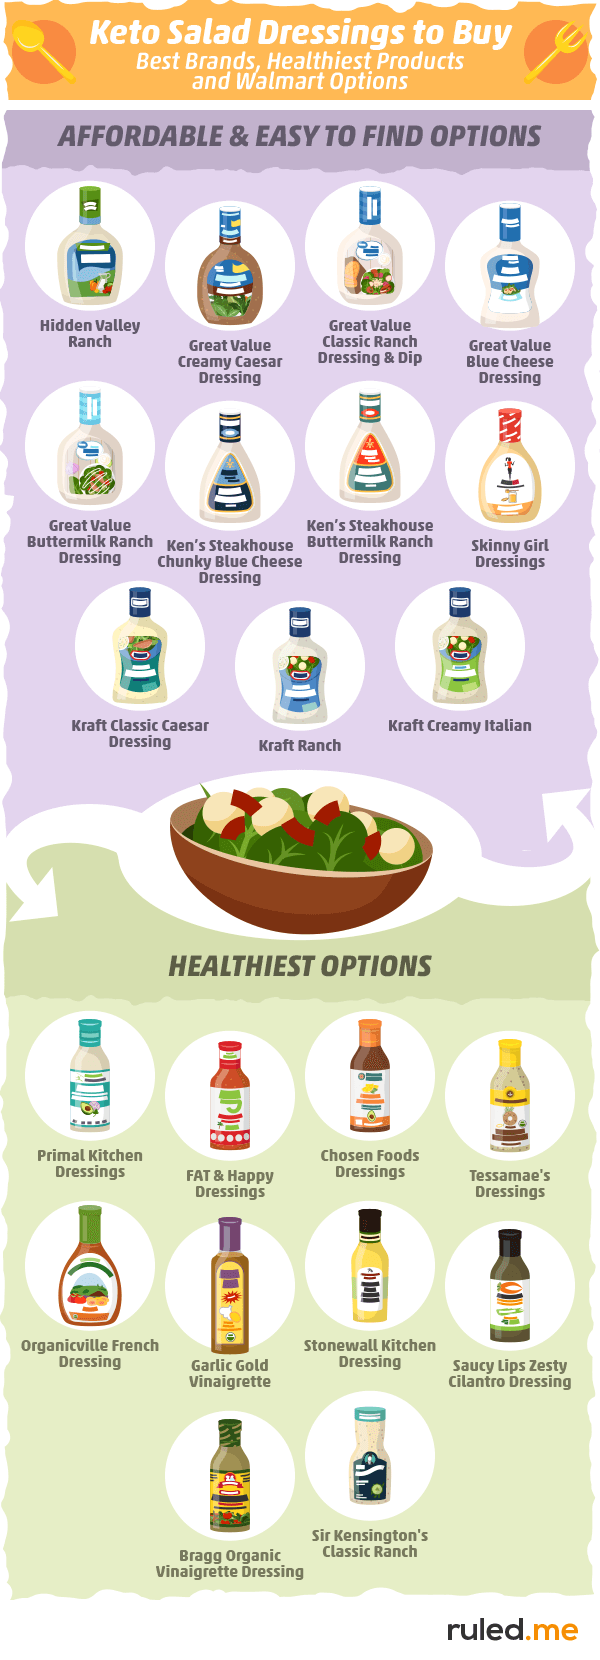 Guide to Keto Salad Dressing [Recipes, Brands & Restaurant Tips]